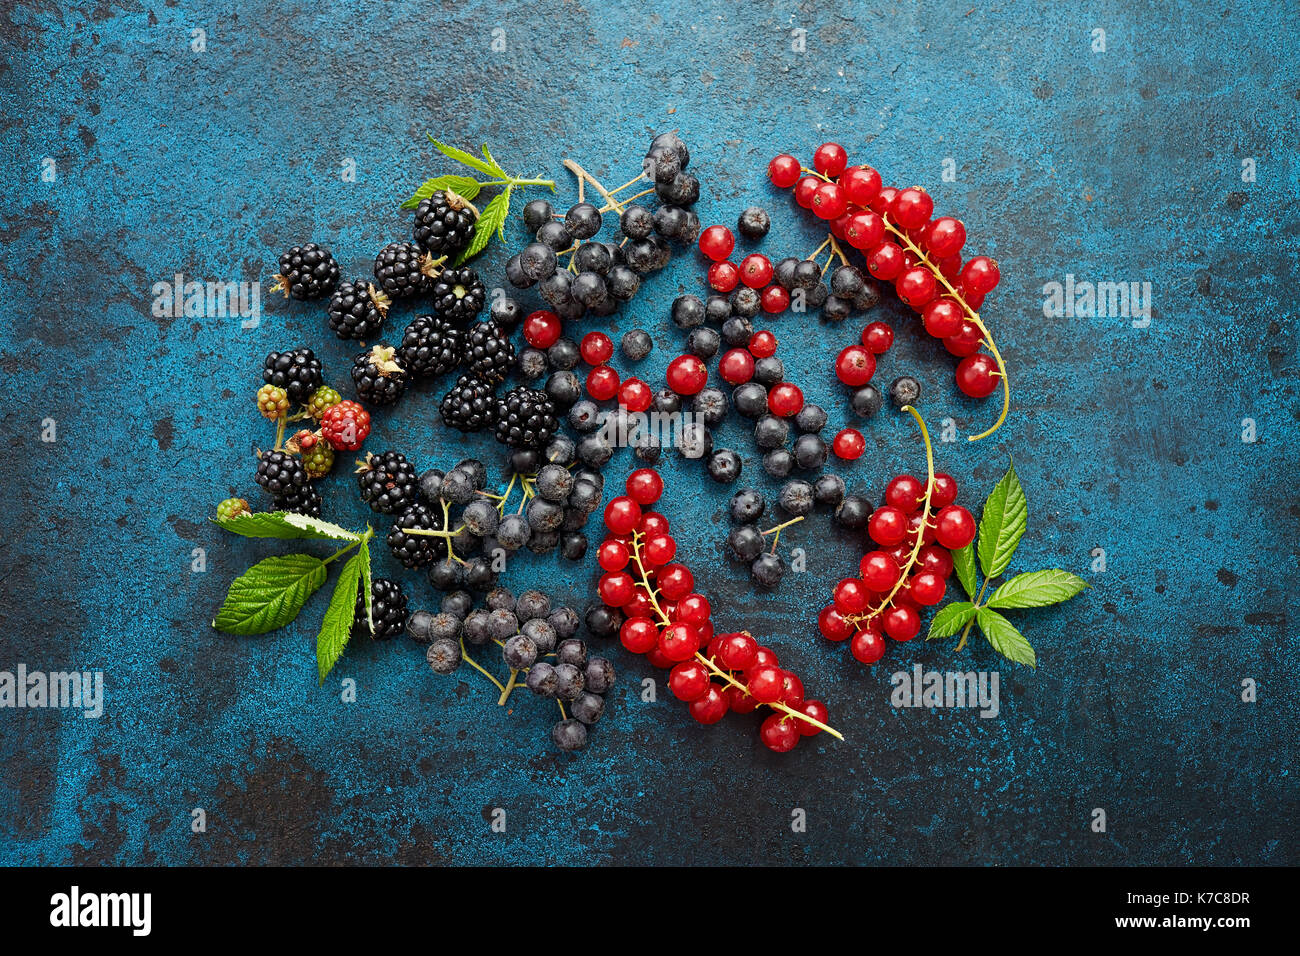 Assorted fresh berries with leaves on metal background. Mix of fresh berries with leaves on textured metal background. - Stock Image